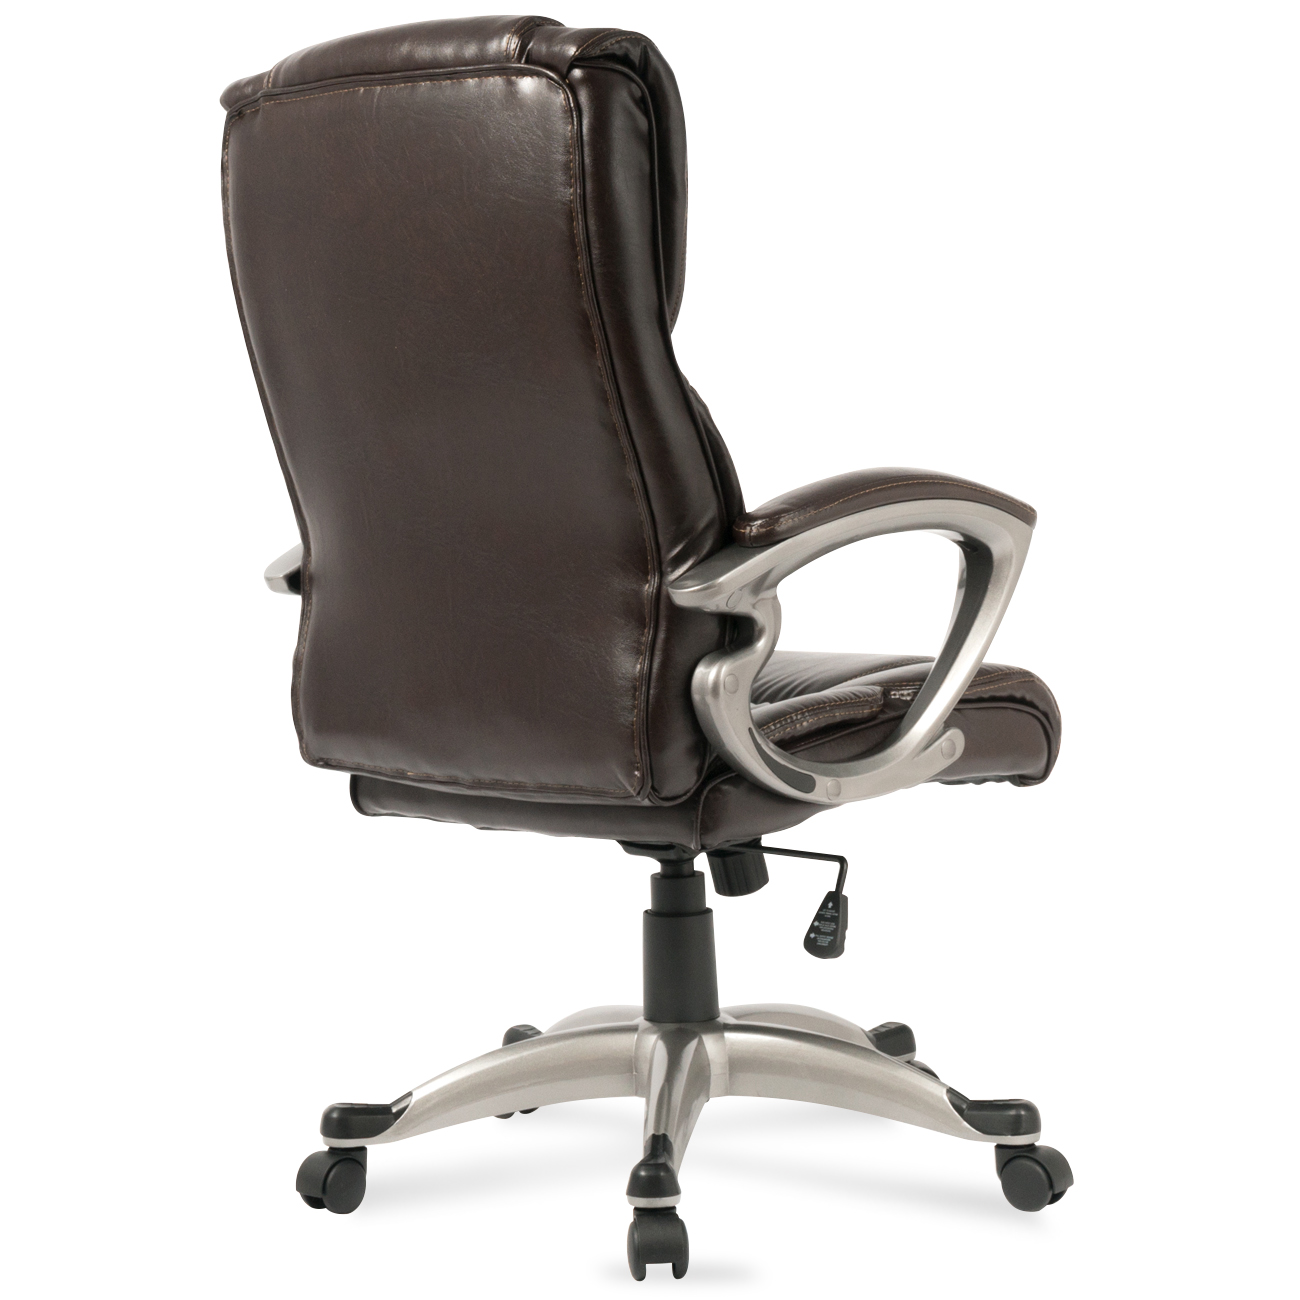 high quality office chairs ergonomic waterproof chair covers executive back task computer